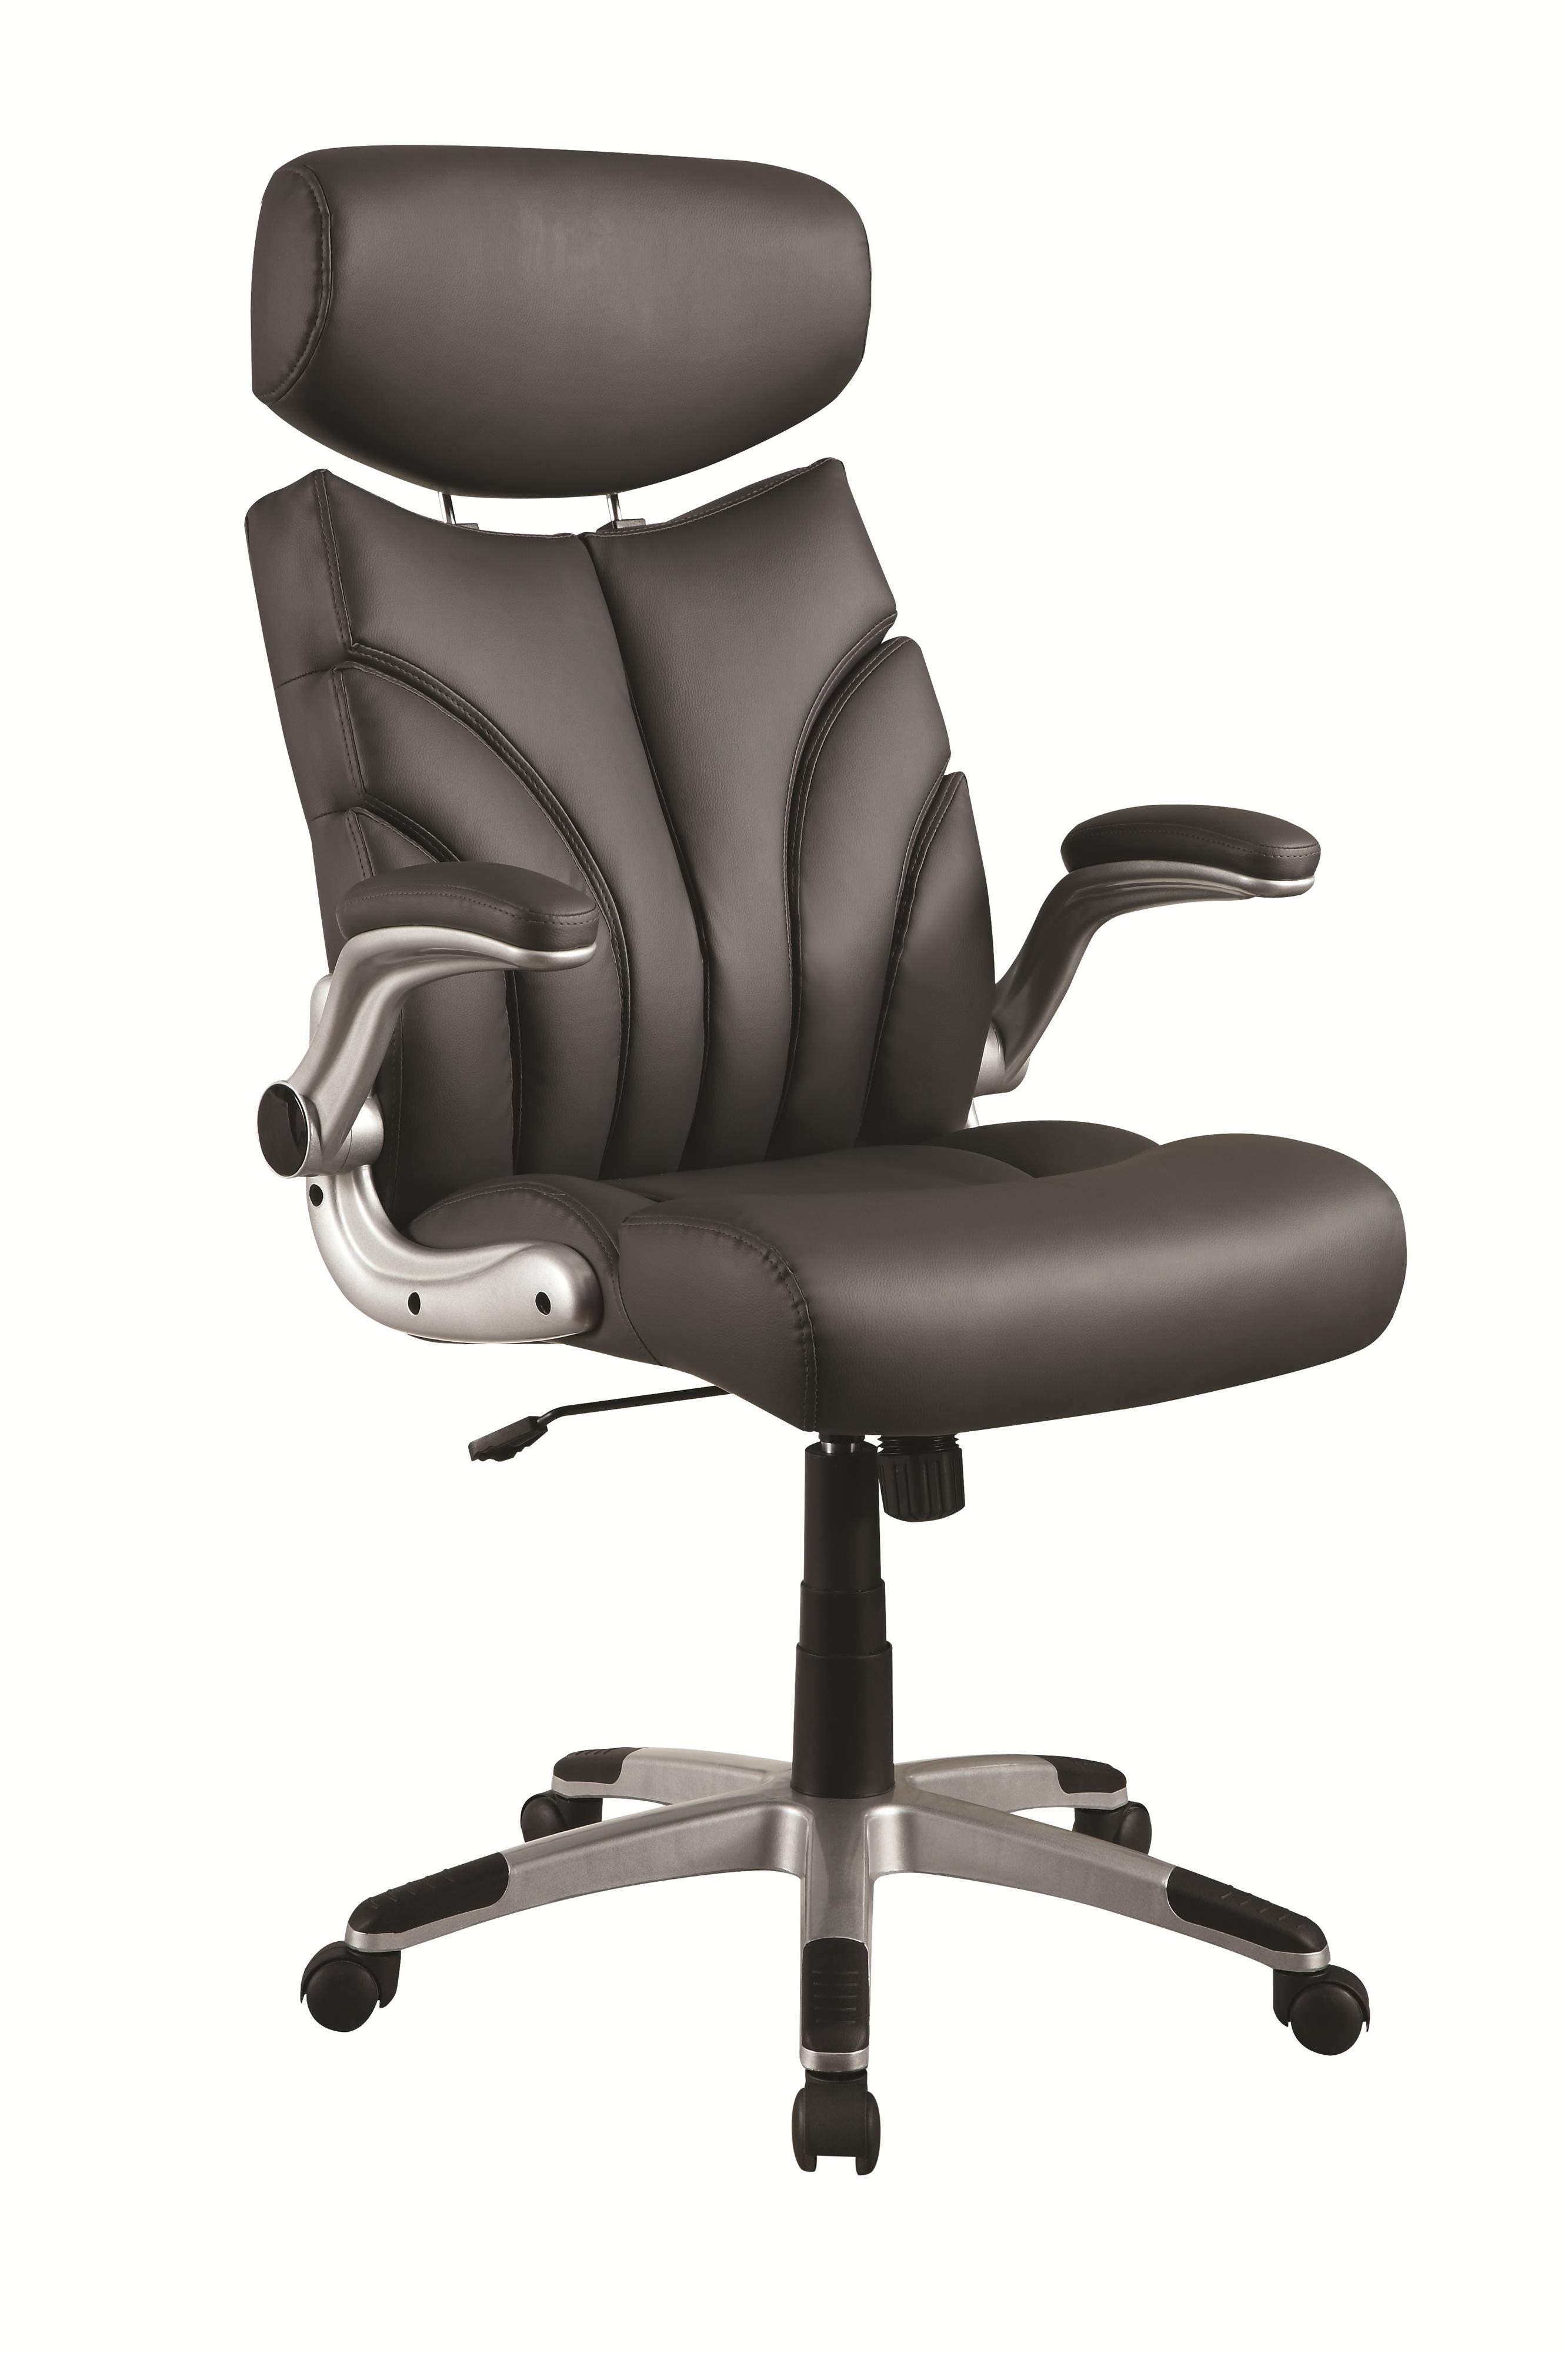 Contemporary Office Chairs Office Chairs Sleek Contemporary Office Chair Rotmans